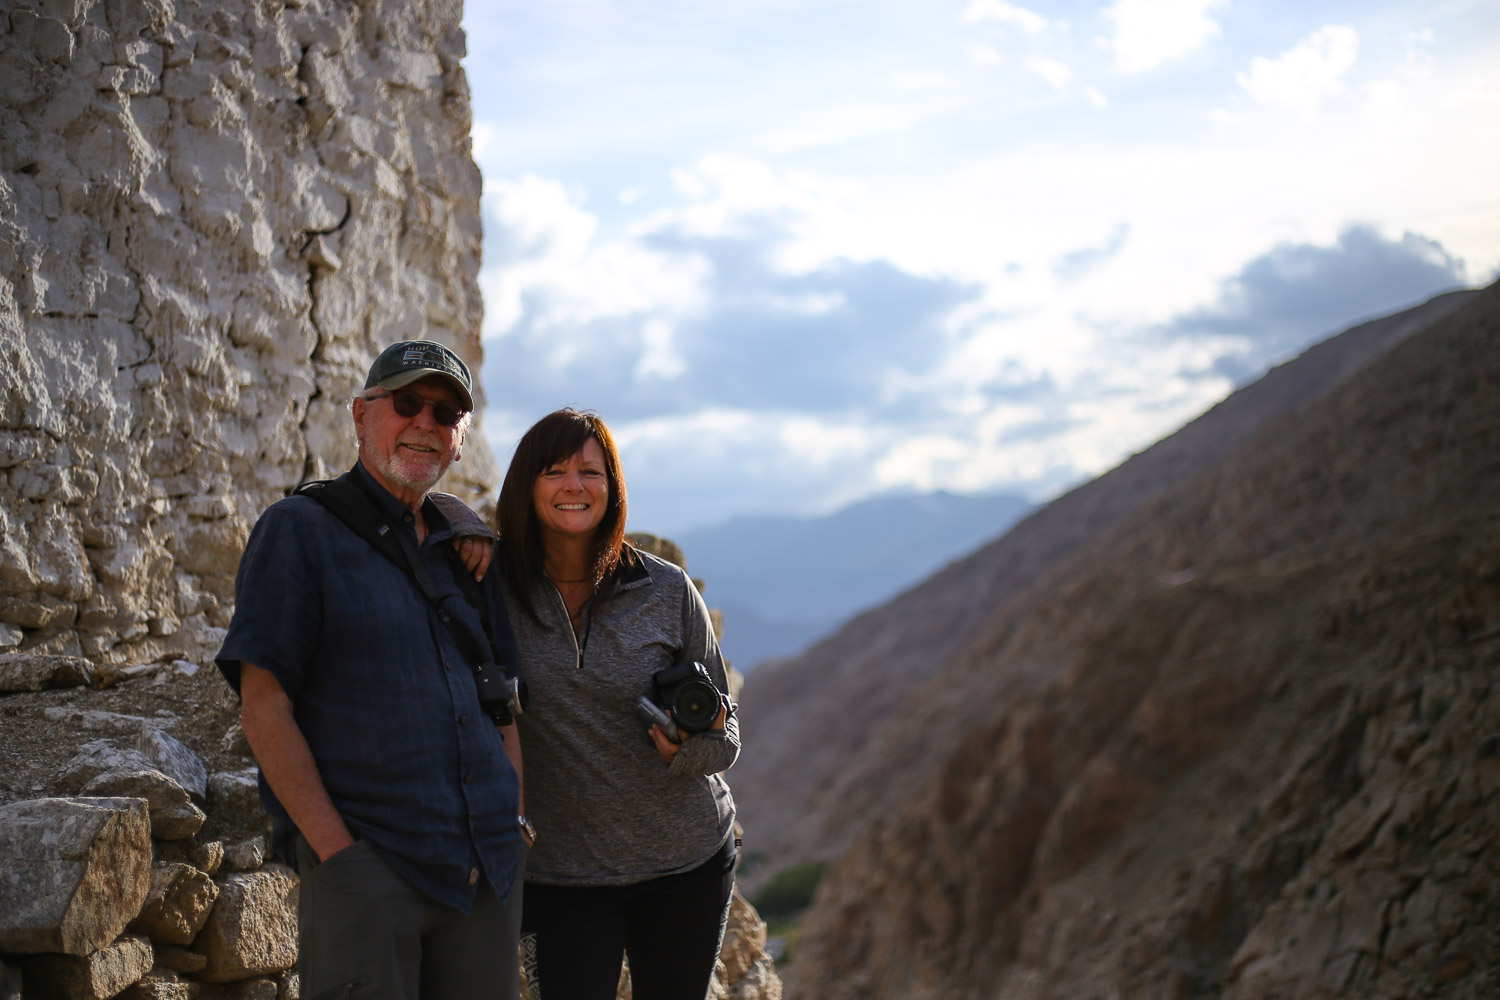 Bill and Sarah at the top of a tiny monastery during a home stay. Photo: Jigmat Lundup